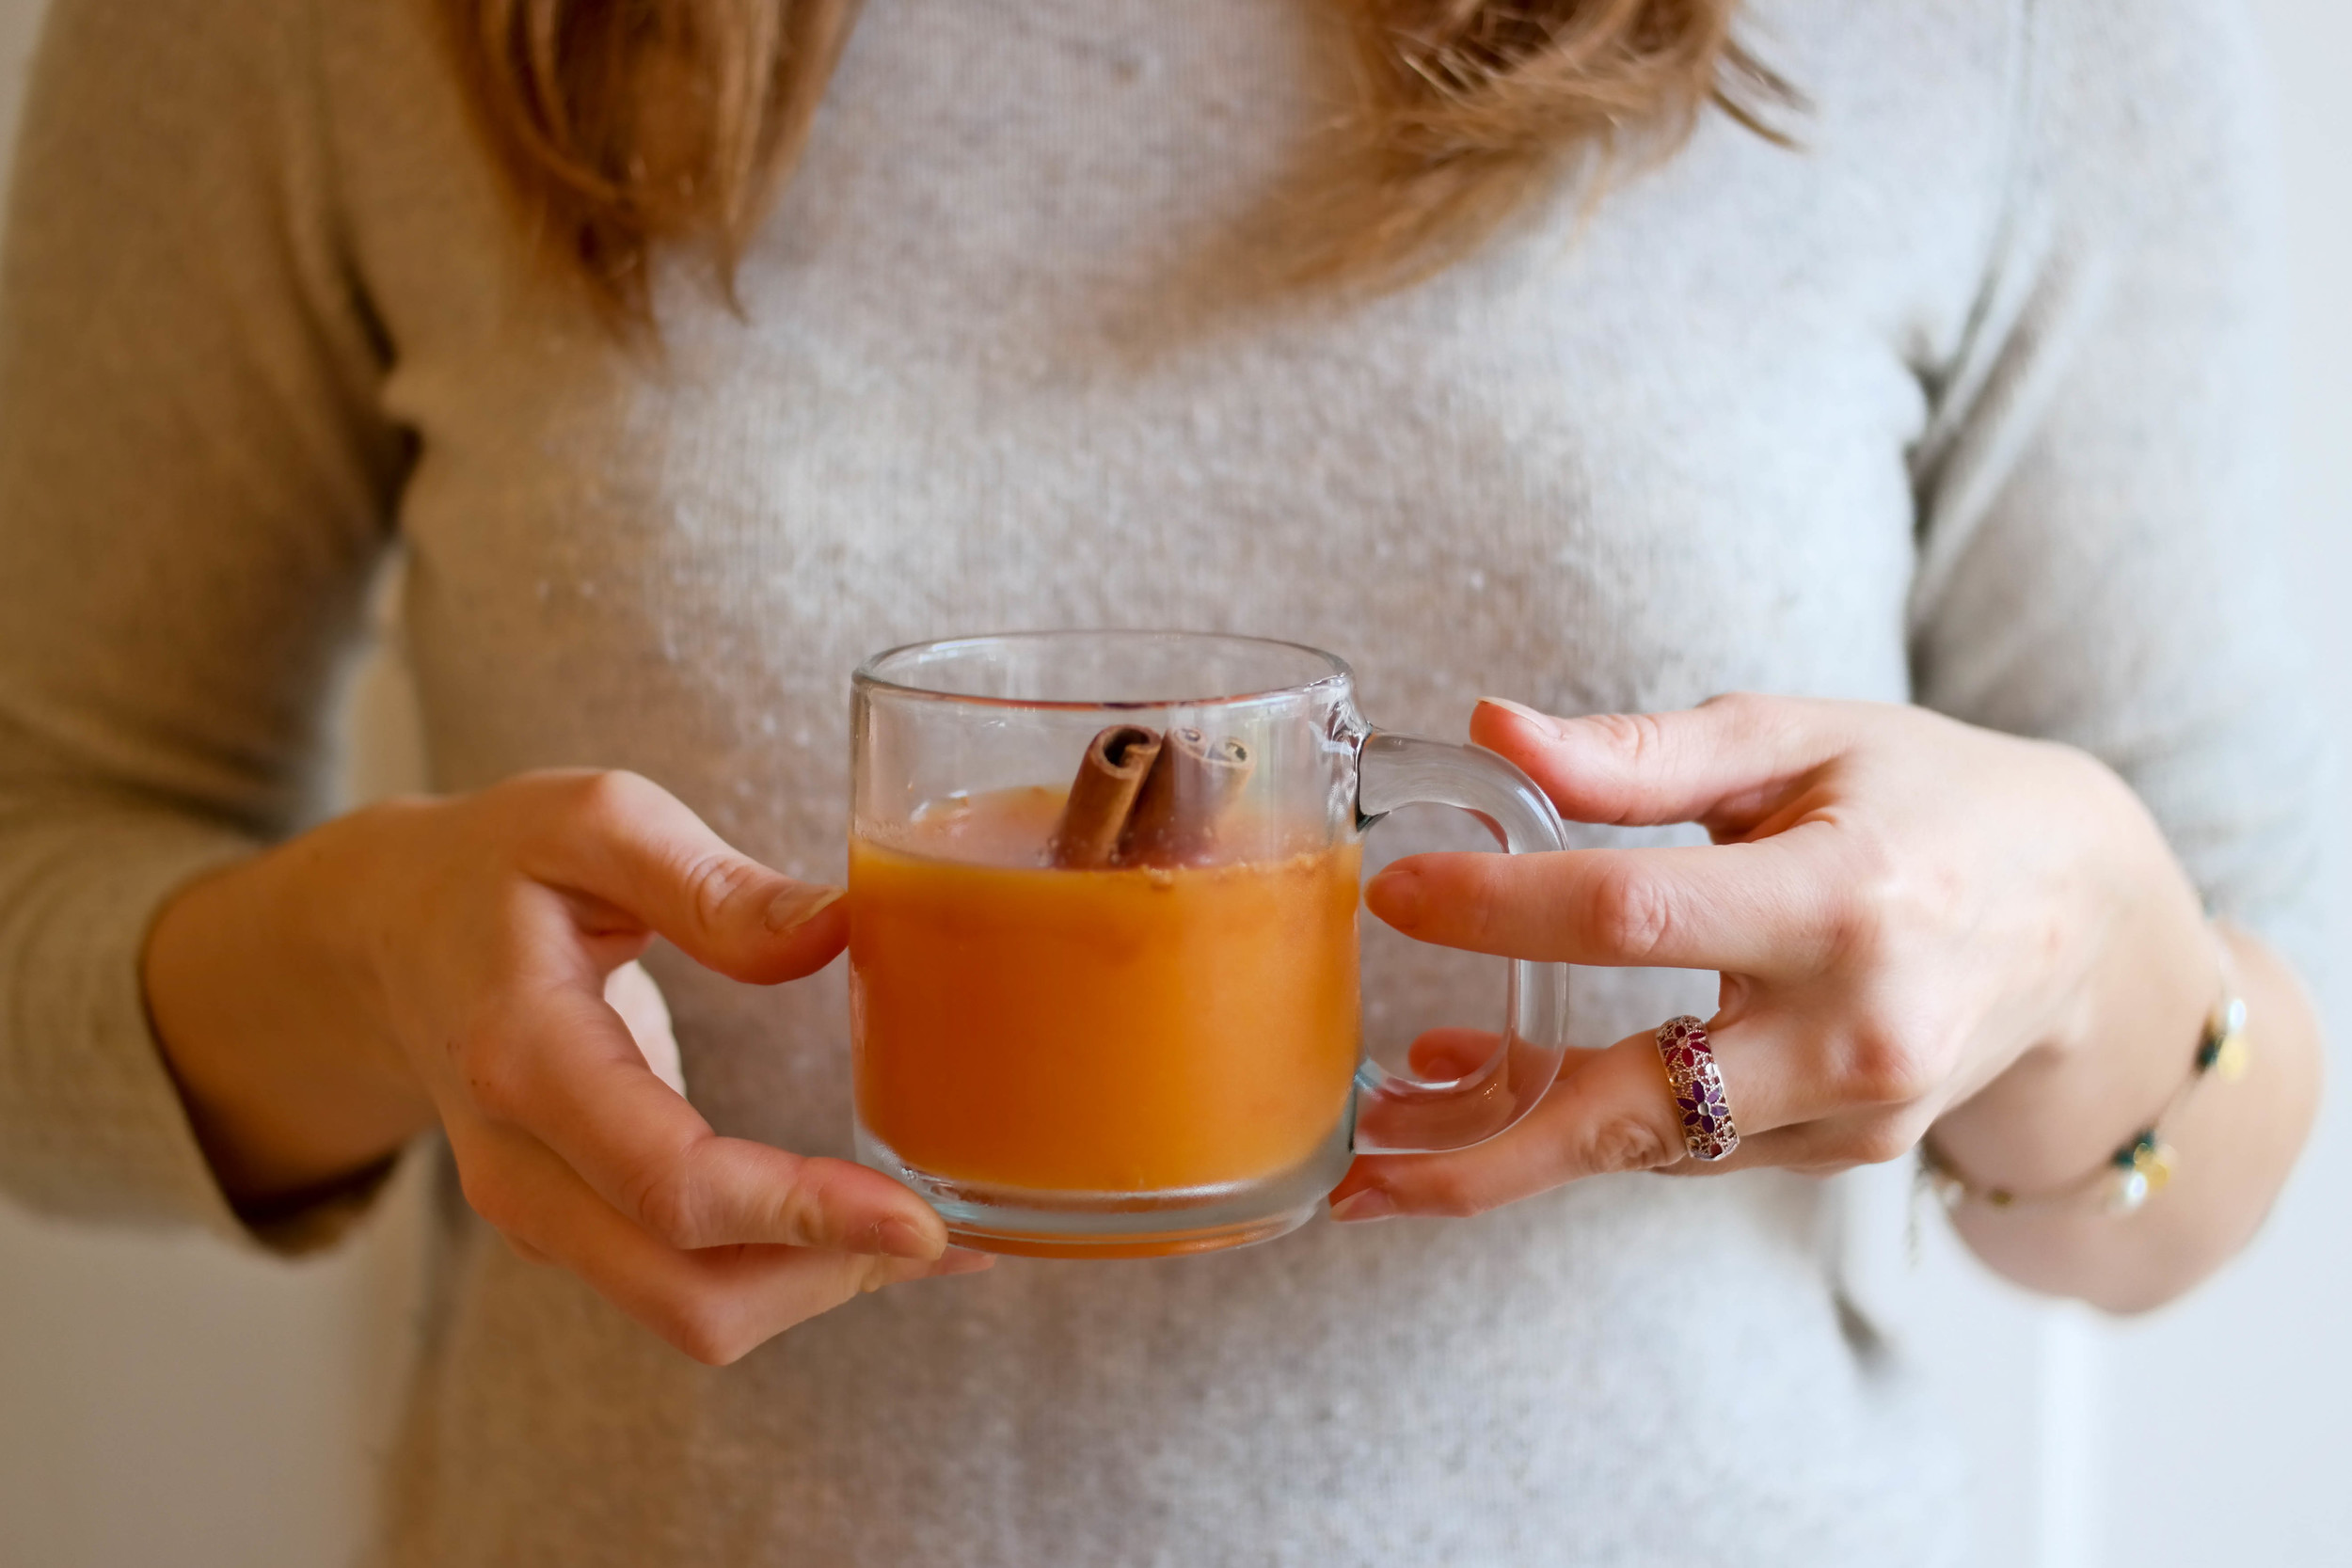 4-Warming-Apple-Cider-And-Persimmon-Juice | www.8thandlake.com